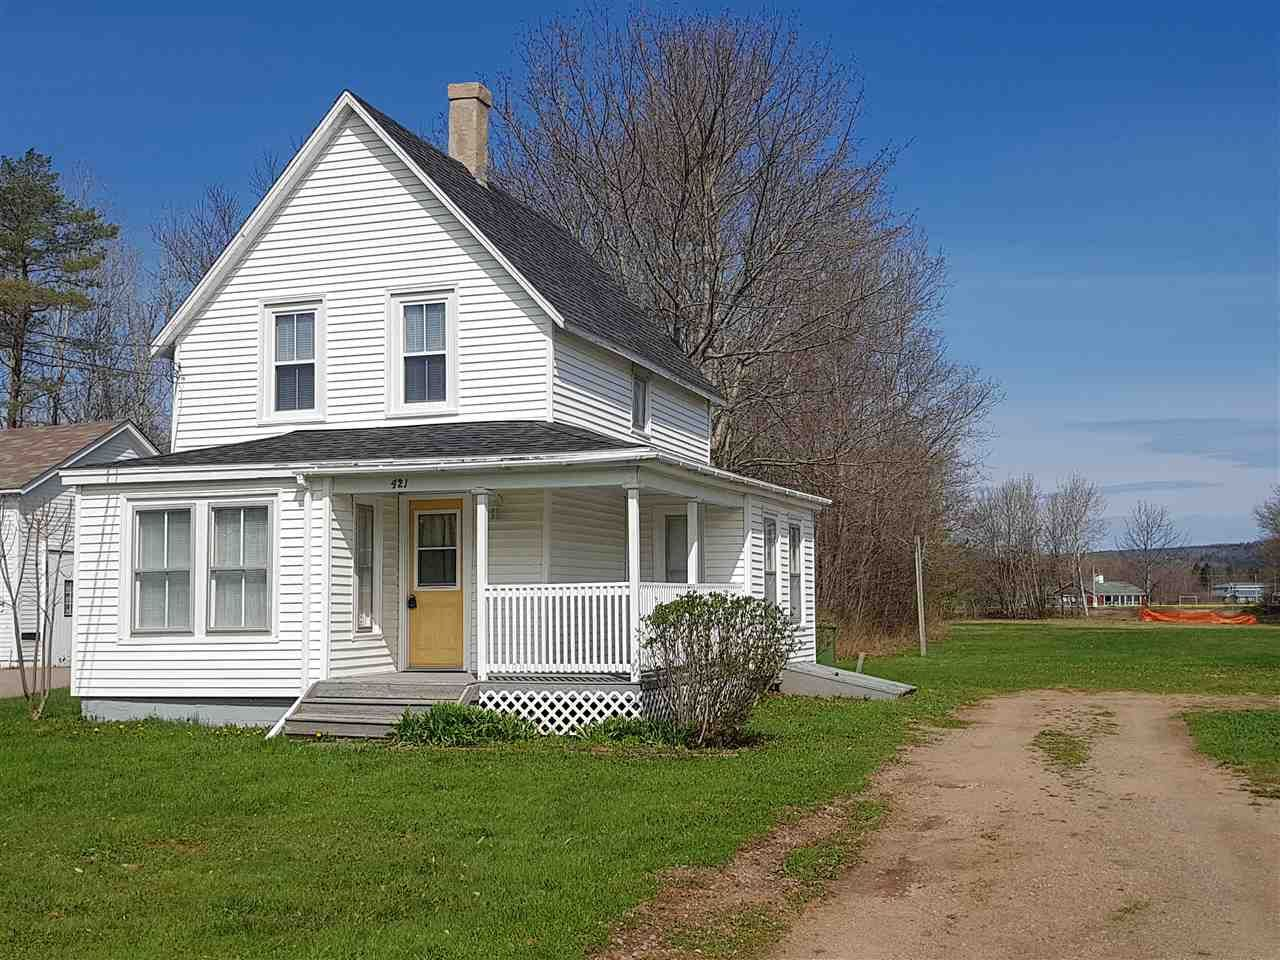 Main Photo: 421 MAIN Street in Middleton: 400-Annapolis County Residential for sale (Annapolis Valley)  : MLS®# 201809953